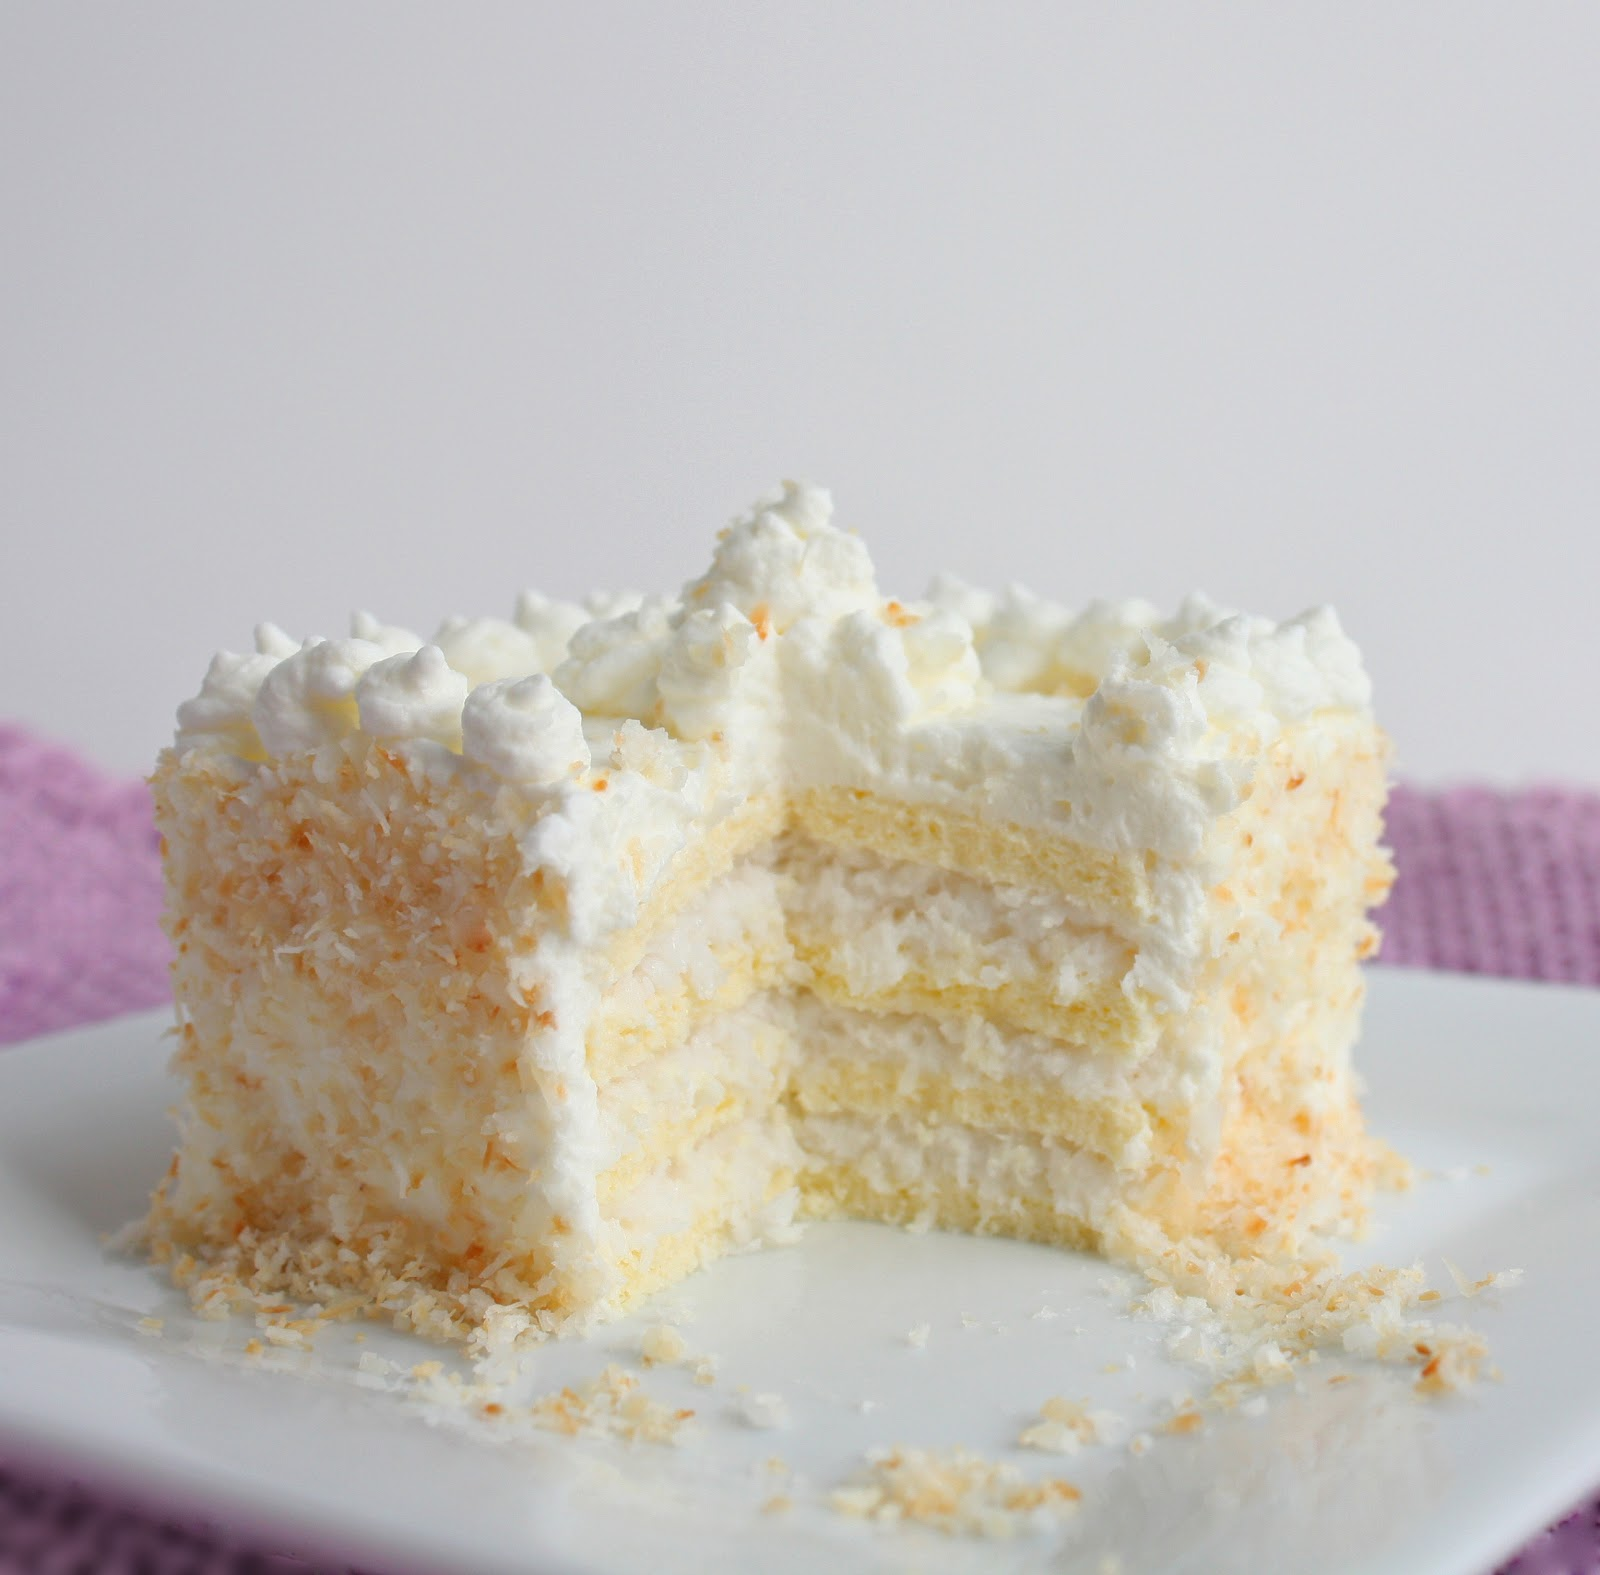 Coconut Frenzy Cake  Low Carb and Gluten Free    I Breathe I m Hungry Coconut Frenzy Cake  Low Carb and Gluten Free